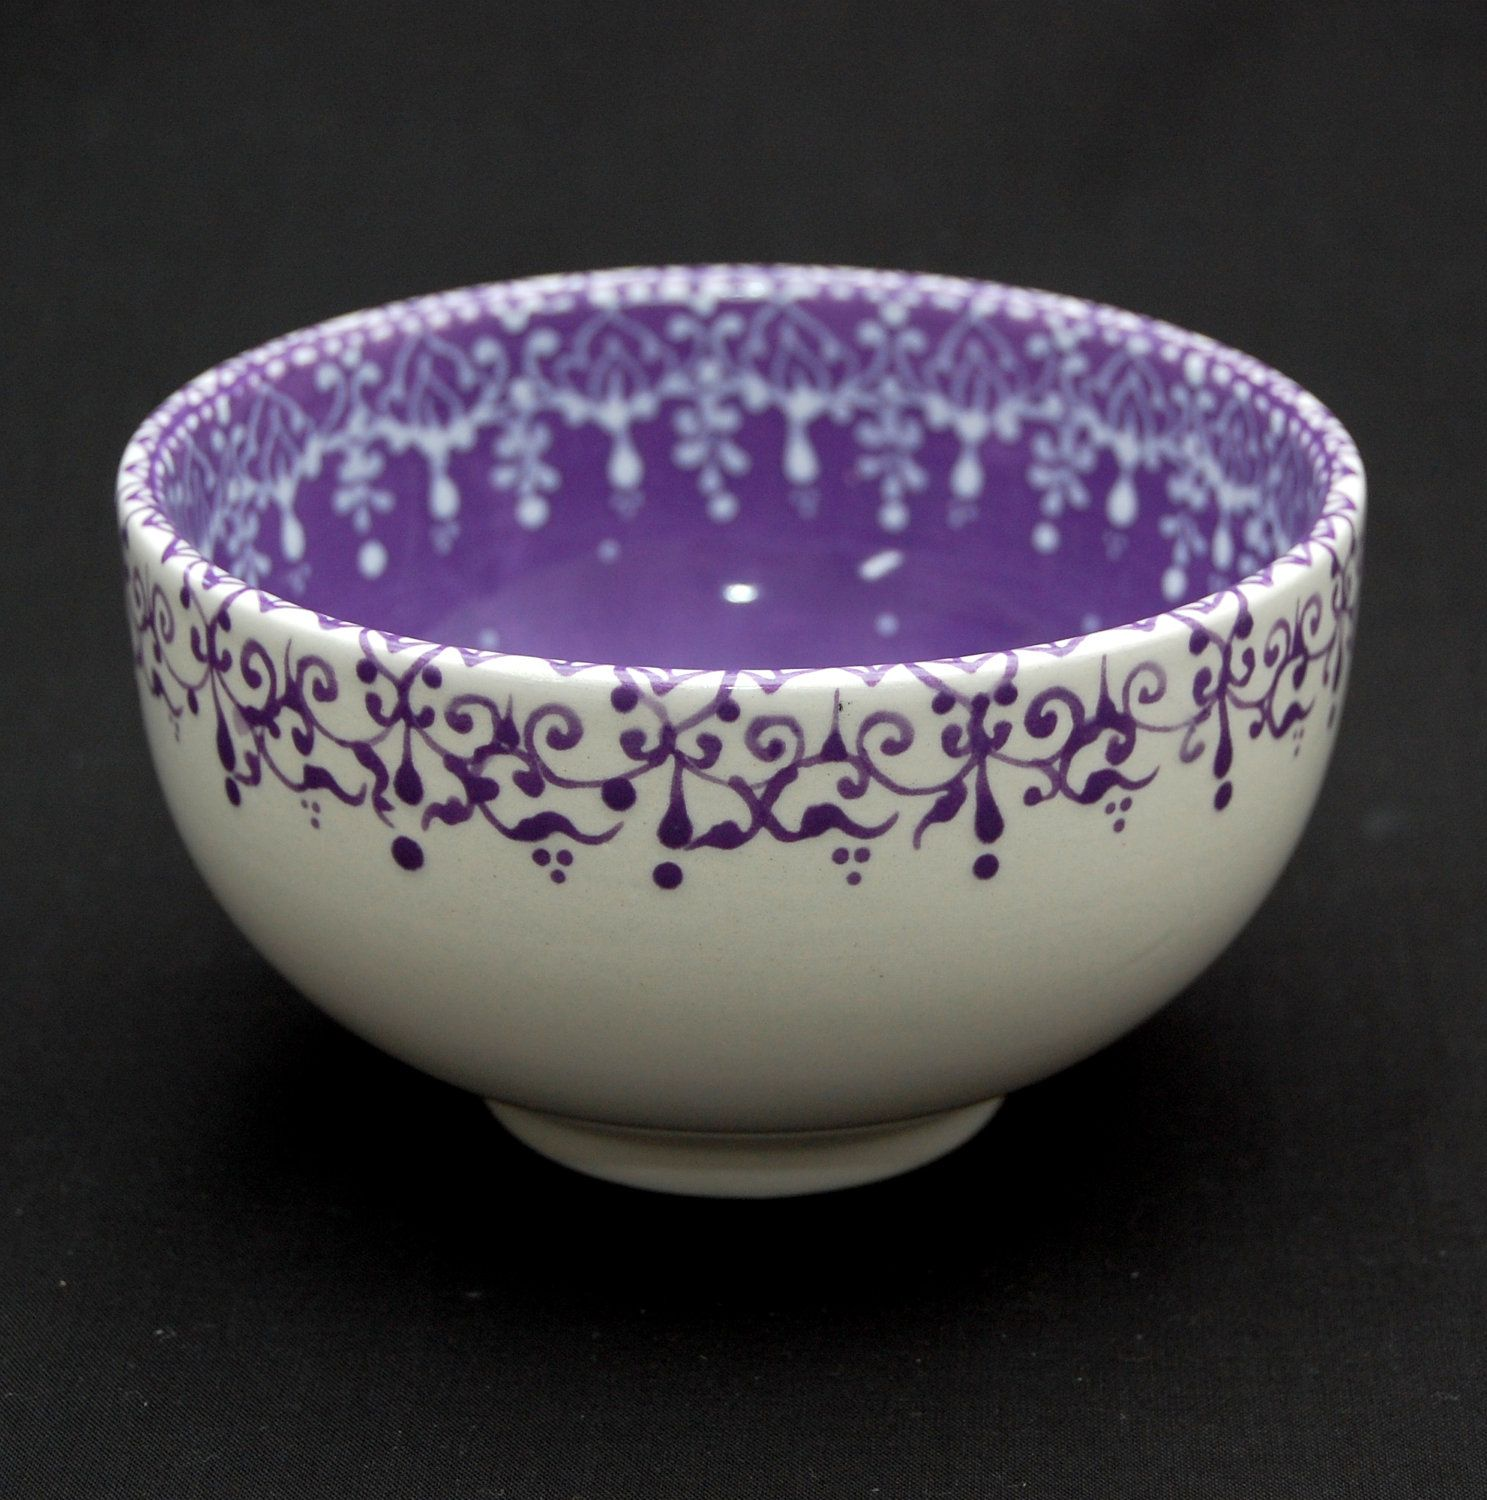 Lovely work using henna designs by uk artist humna mustafa for Bowl painting ideas